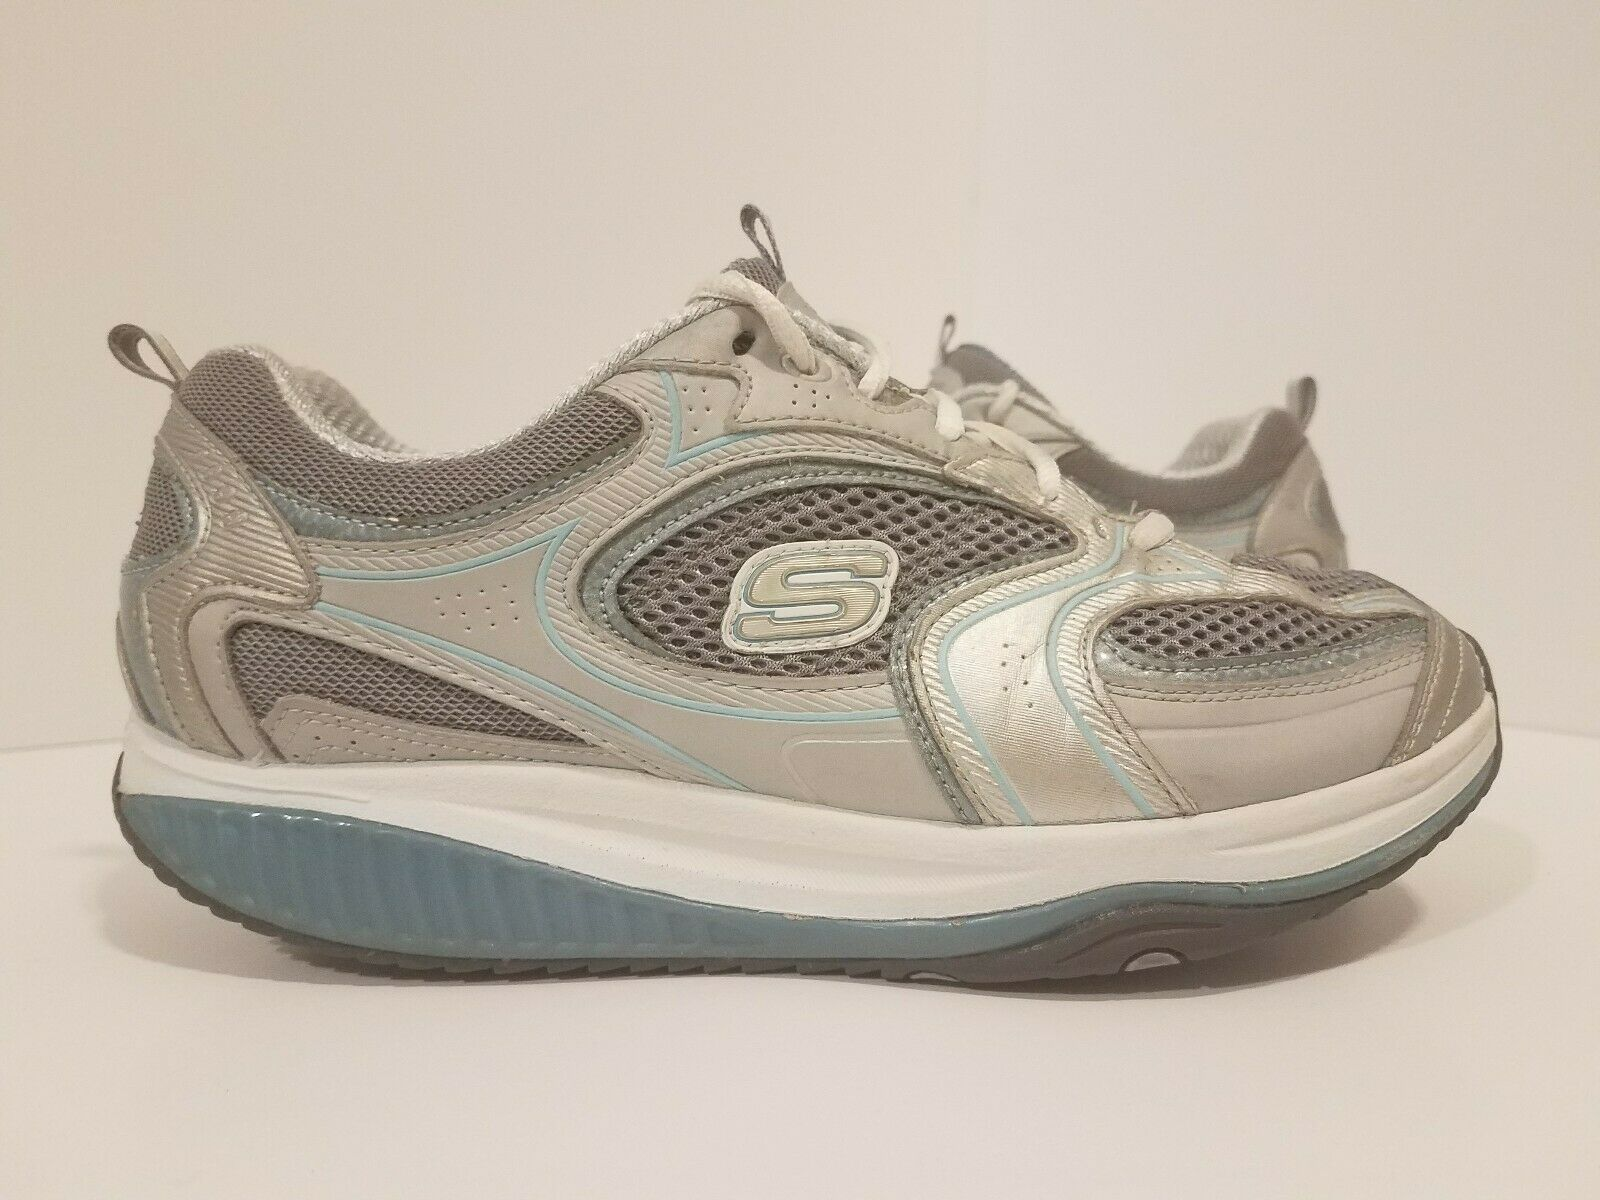 Skechers Shape Ups Women's Sz 9.5 Sneakers Shoes Gray White